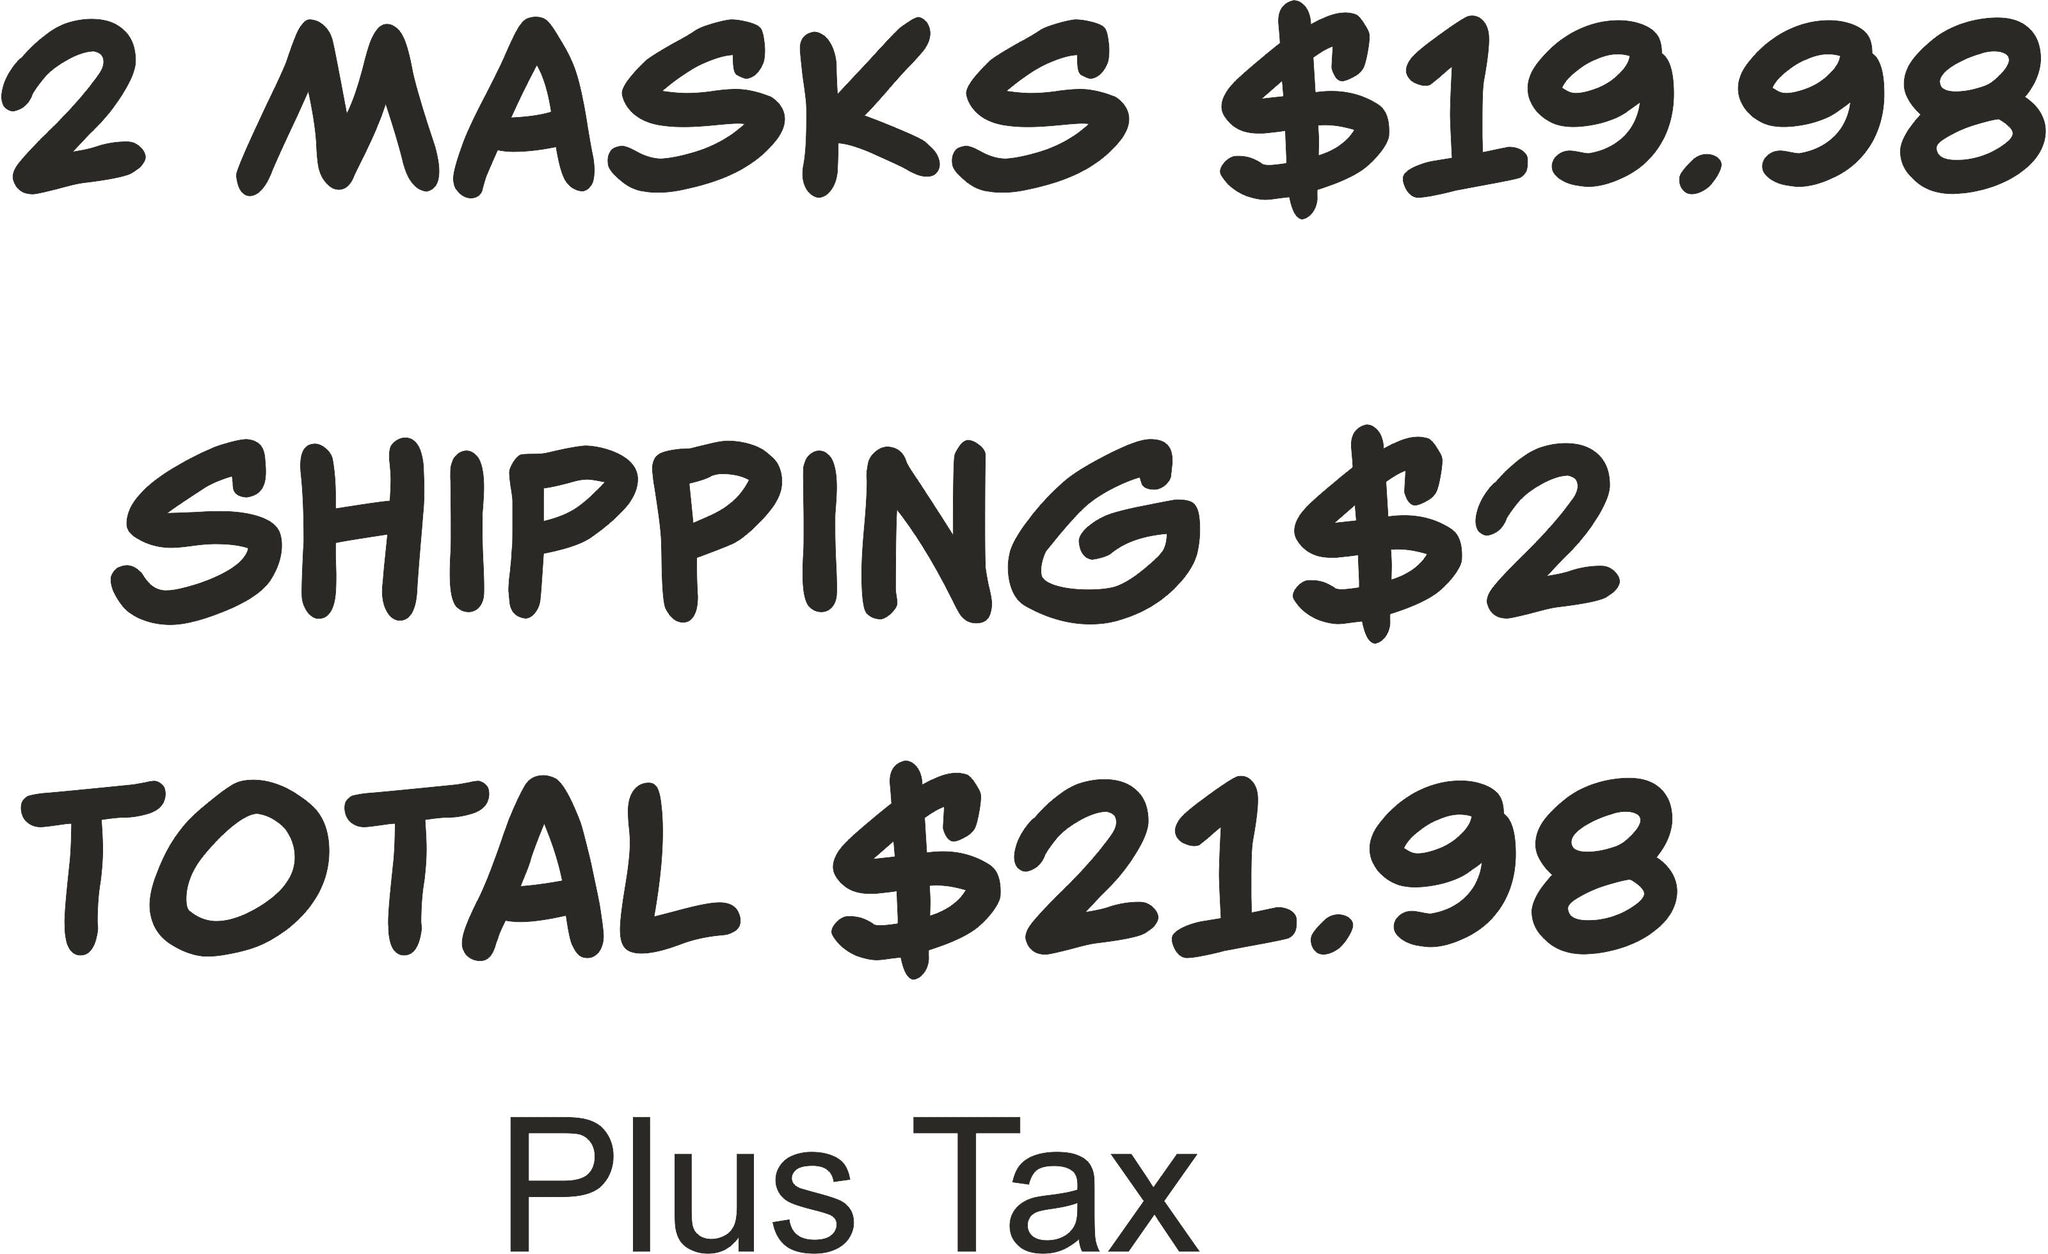 2 Masks plus shipping